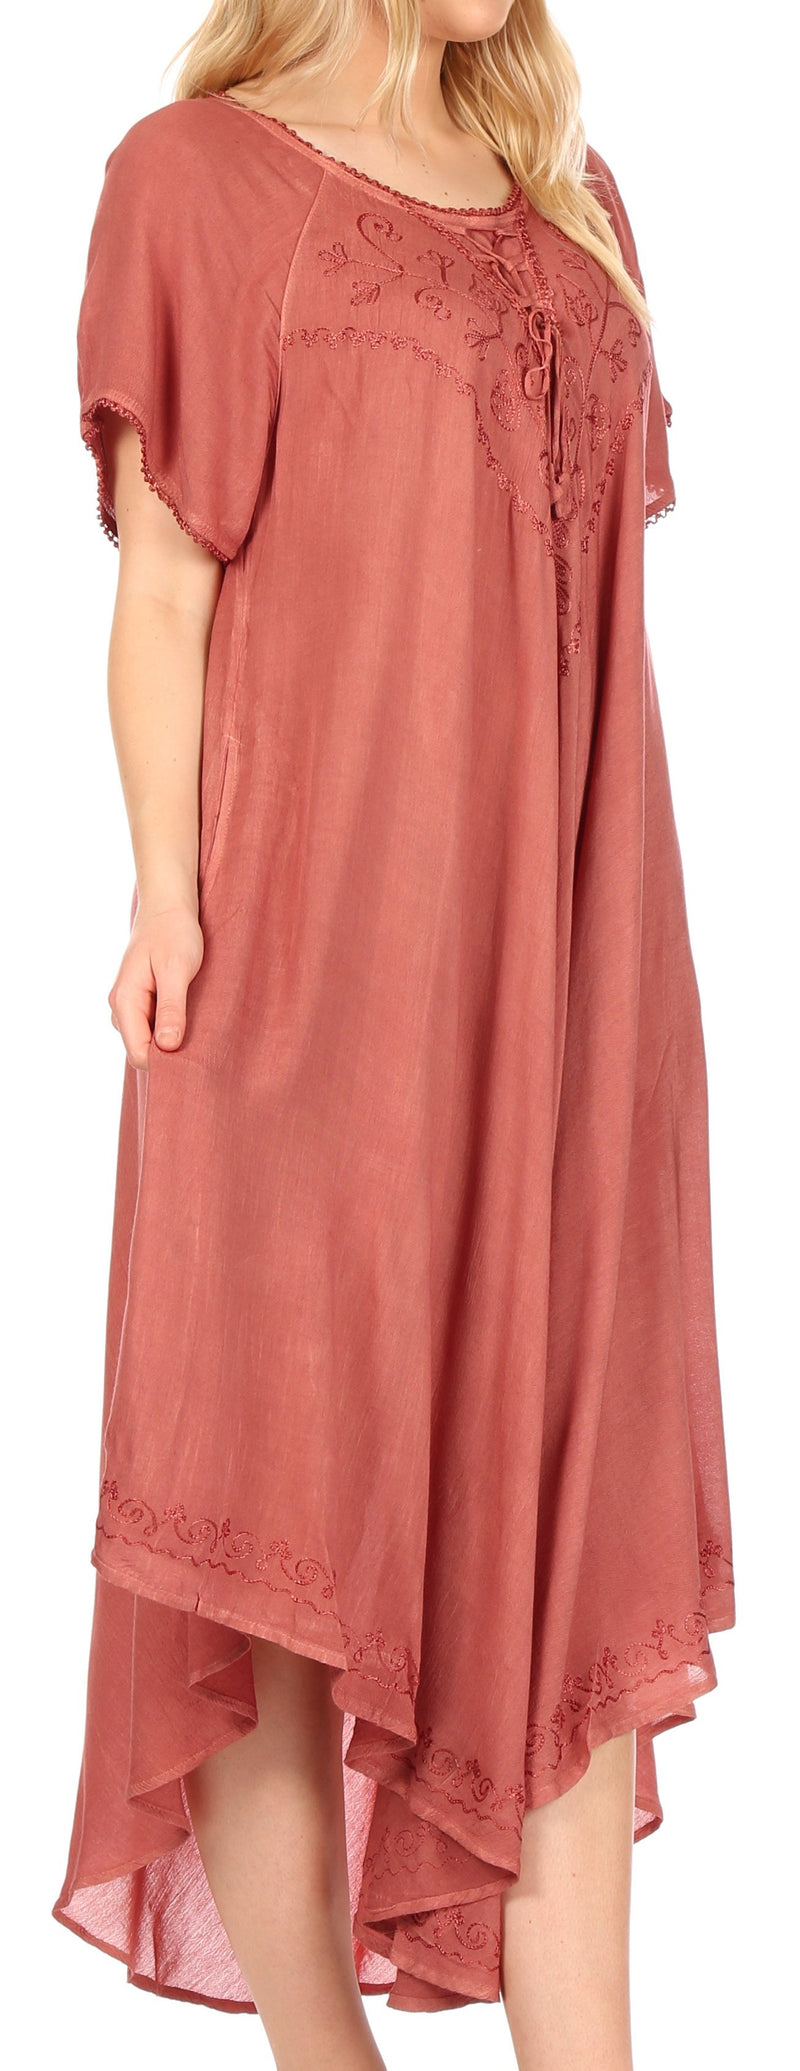 Sakkas Lilia Embroidered Lace Up Bodice Relaxed Fit  Maxi Sun Dress